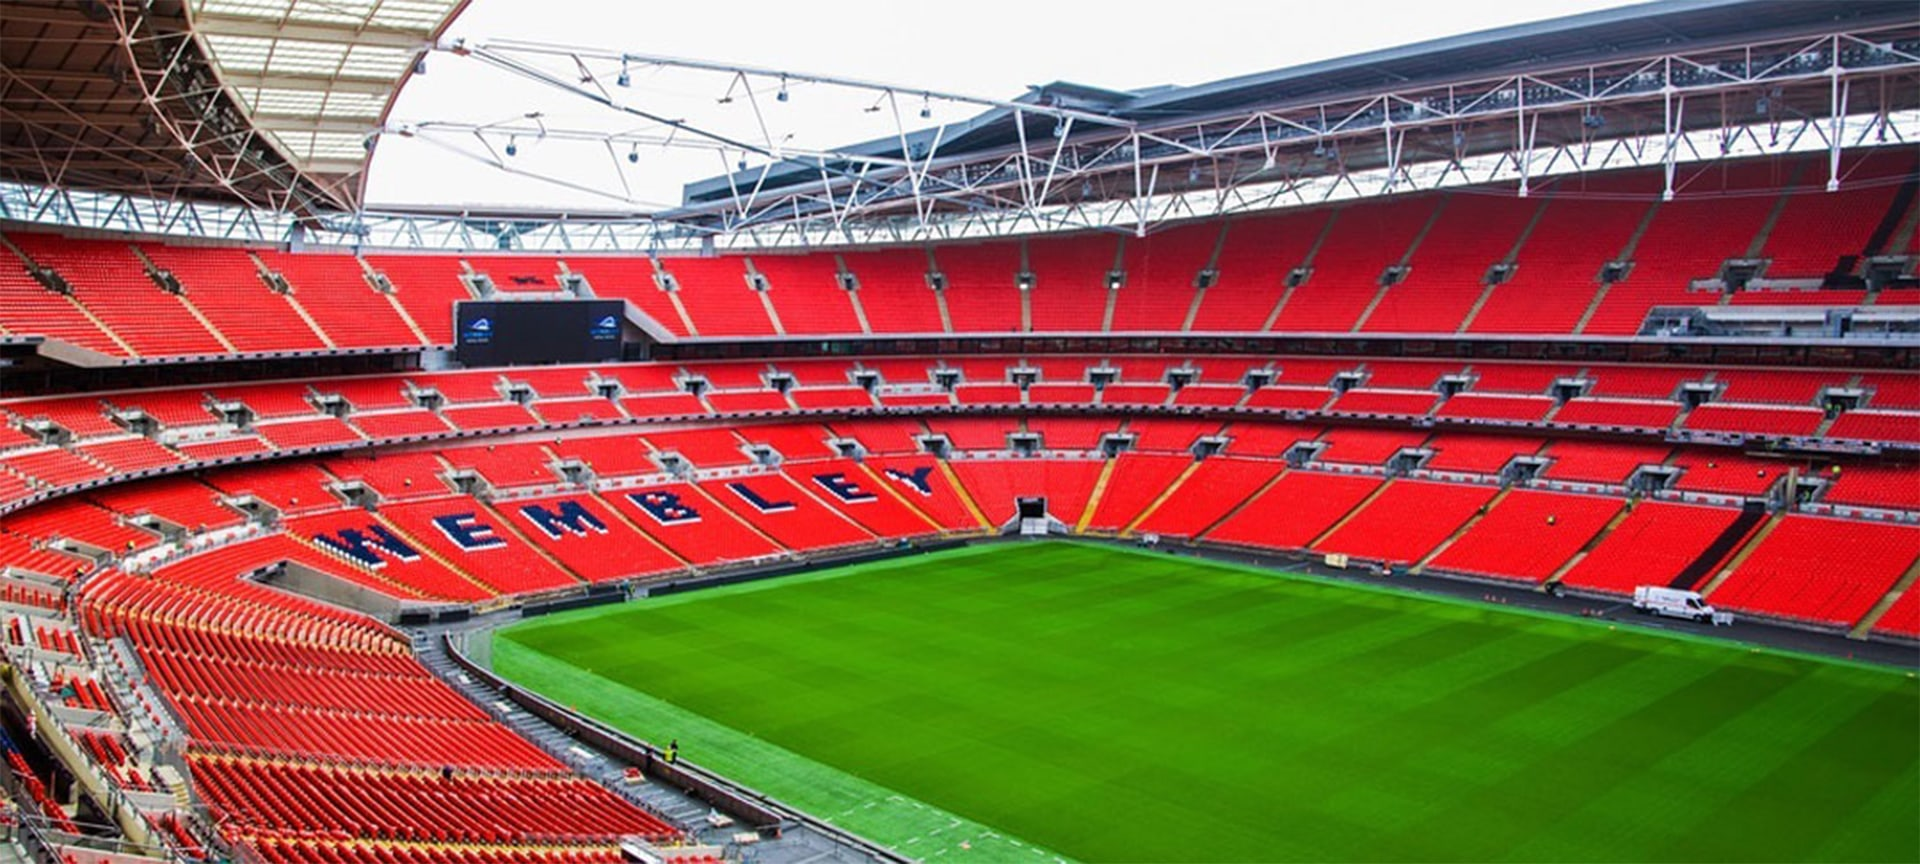 Wembley Stadium is a football stadium in Wembley, London. It opened in 2007 on the site of the original Wembley Stadium, which was demolished from 2002 to 2003. The stadium hosts major football matches including home matches of the England national football team, and the FA Cup Final.